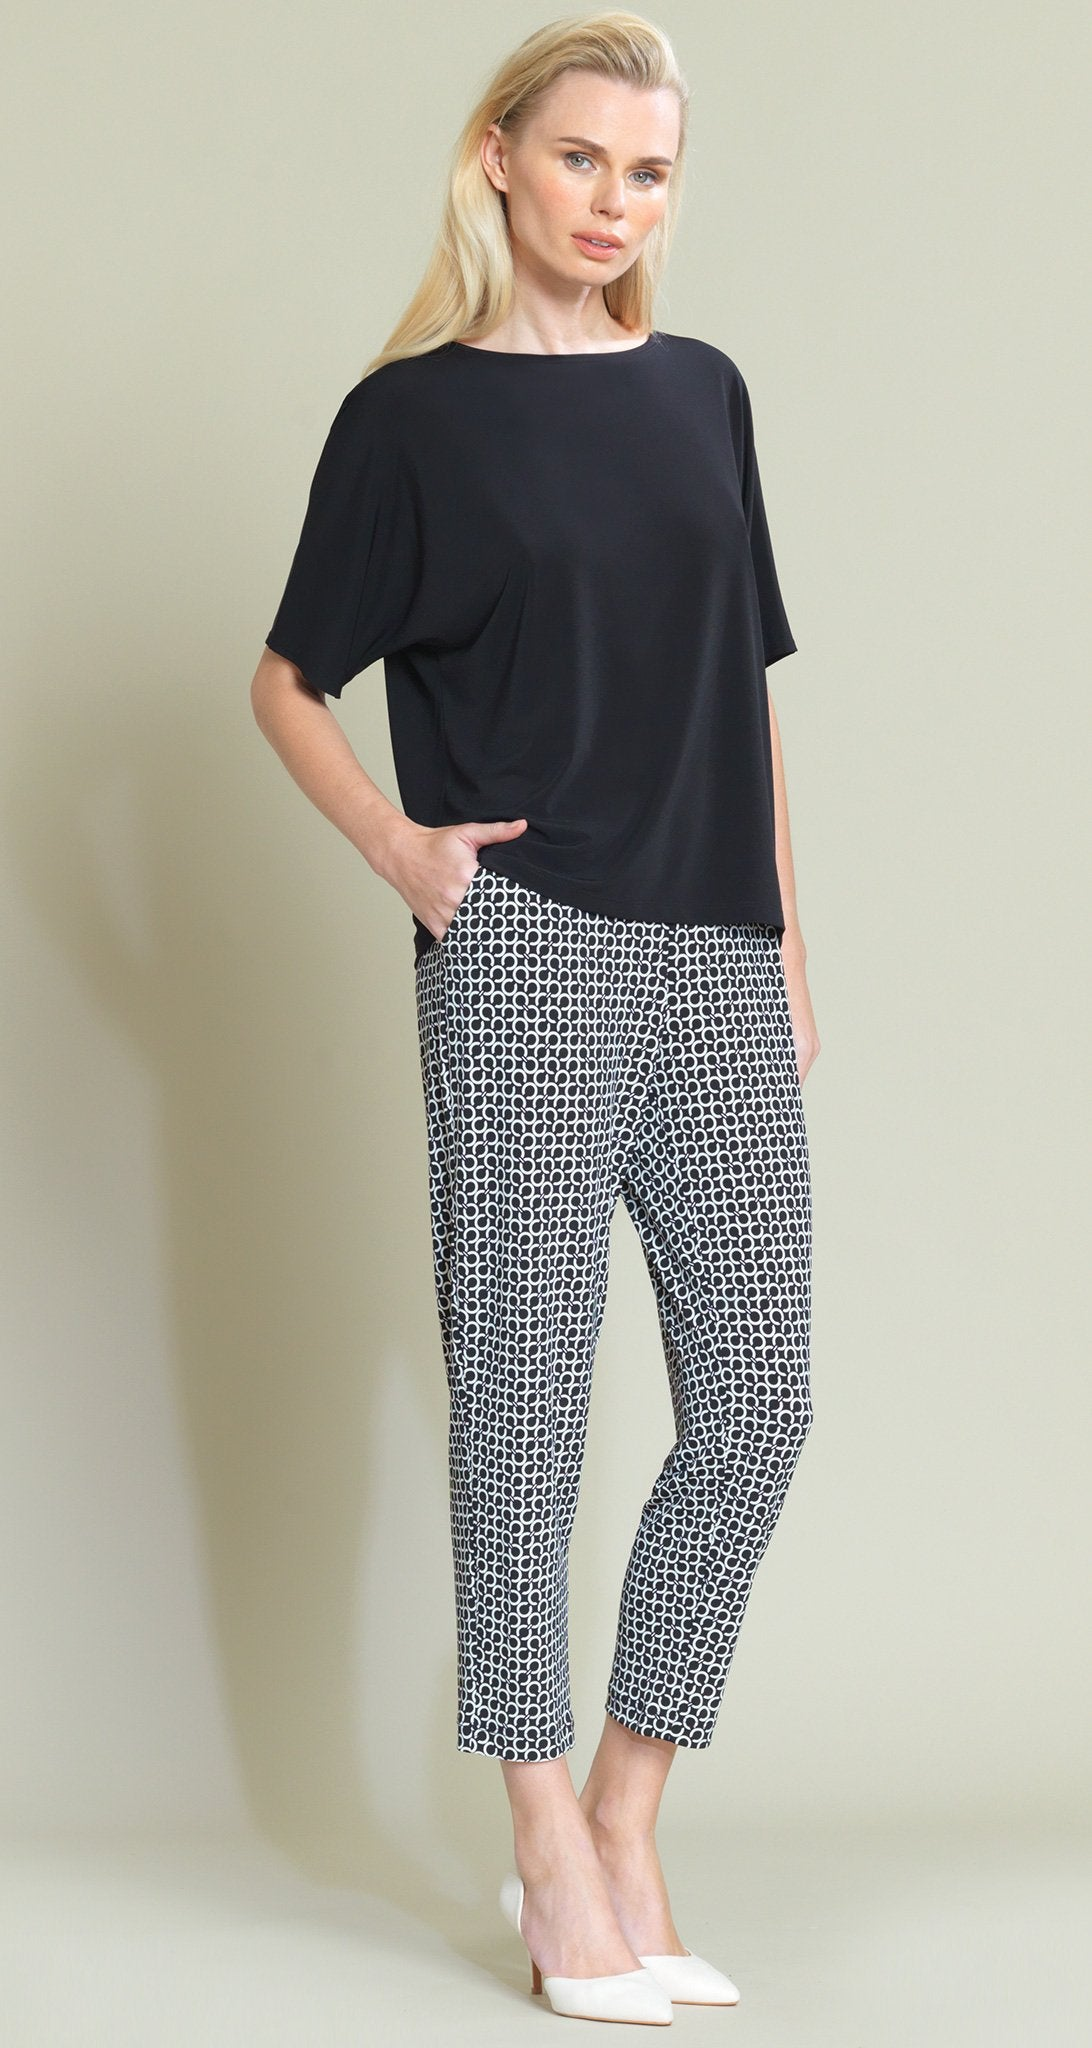 Chain Print Jogger Pocket Capri - Black/White - Clara Sunwoo